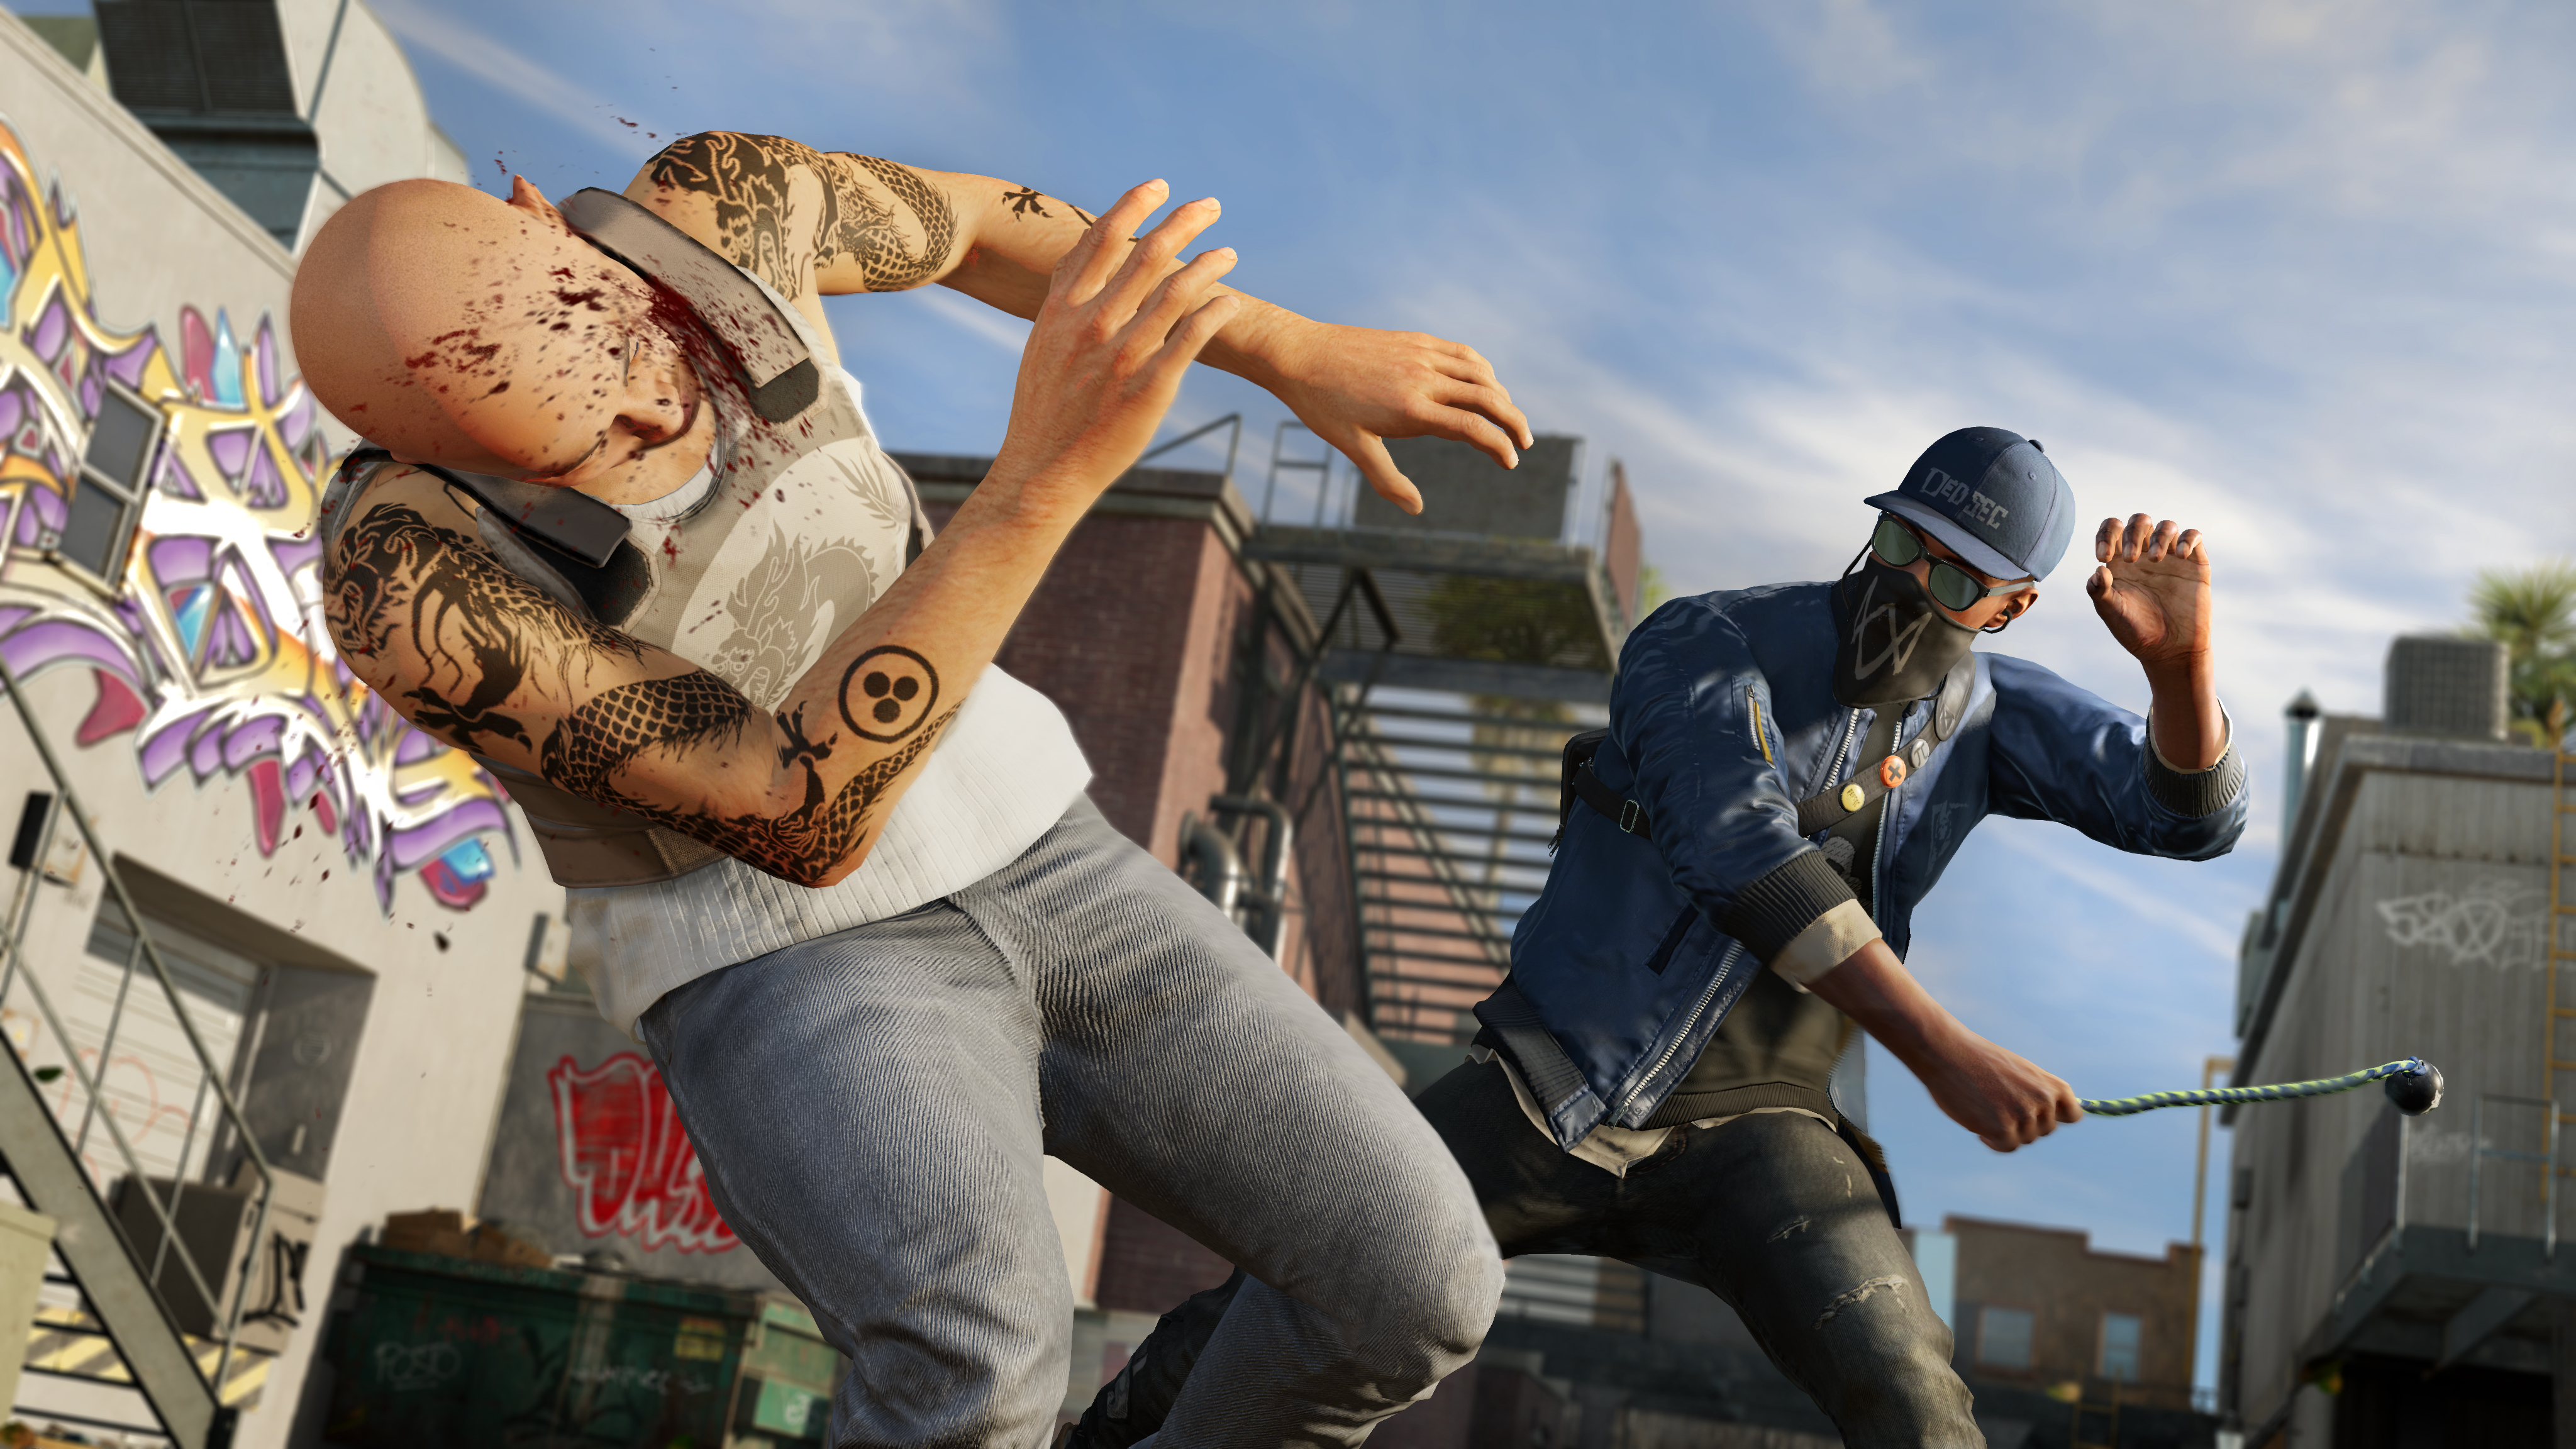 hijo árabe Virus  Watch Dogs 2 Review: A Better Story, but Broken Features   Time